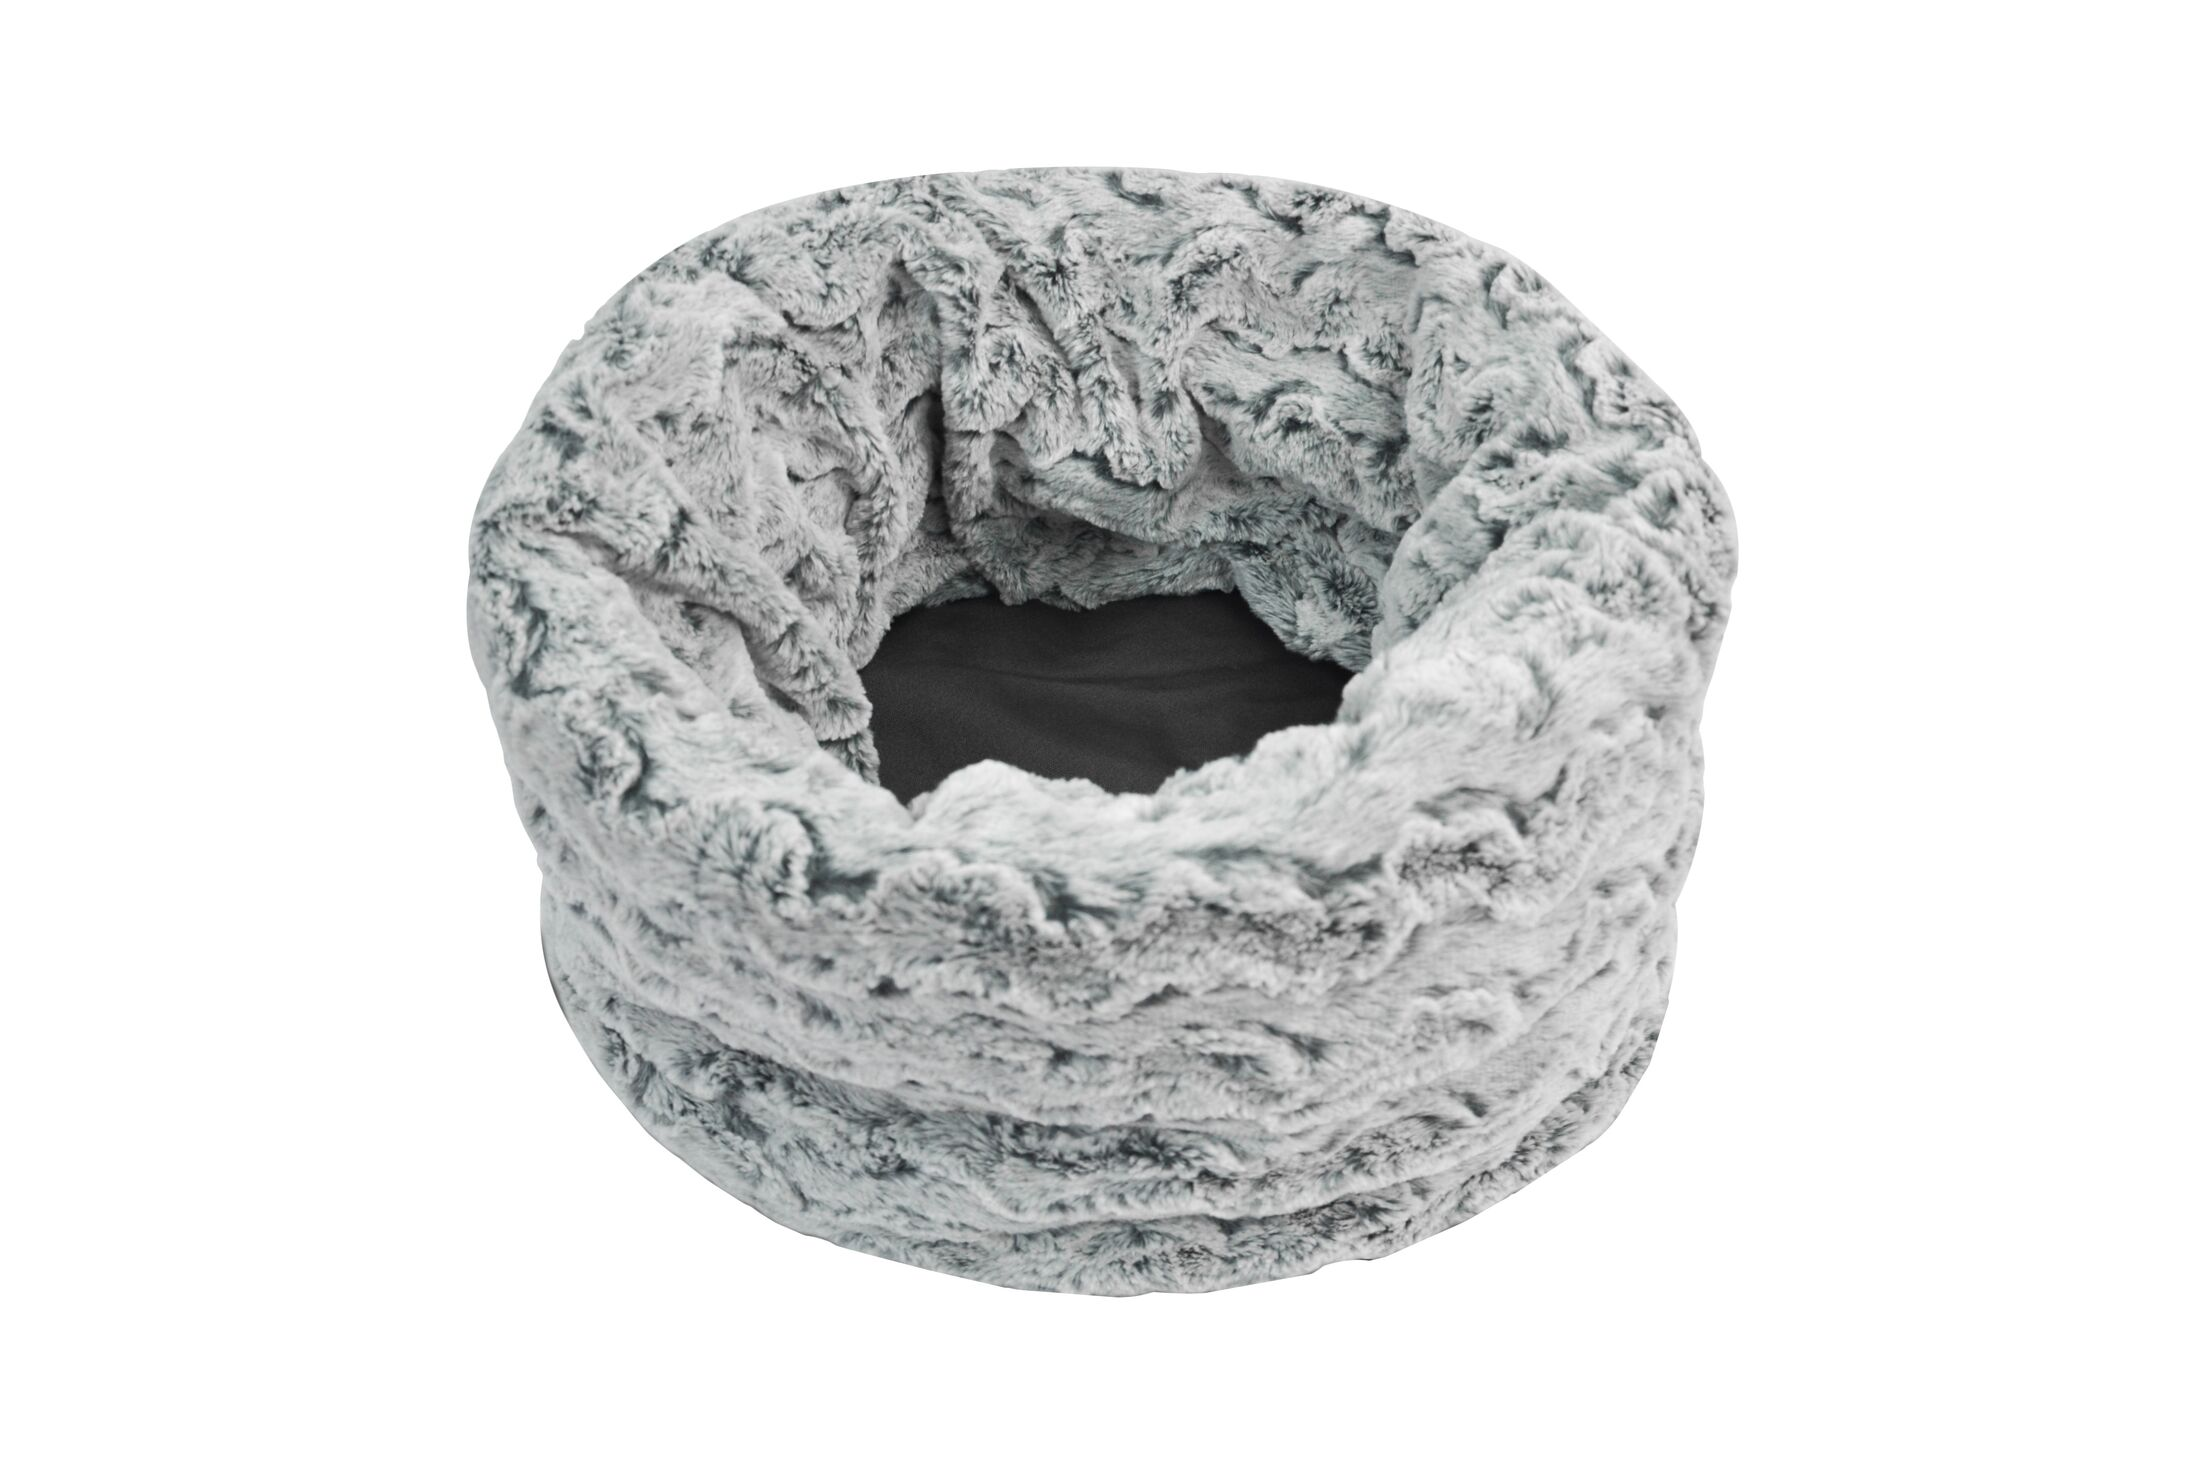 Snuggle Dog Sack with Reversible Faux Fur and Dirt Resistant Canvas Layers Size: Large, Color: Husky Gray